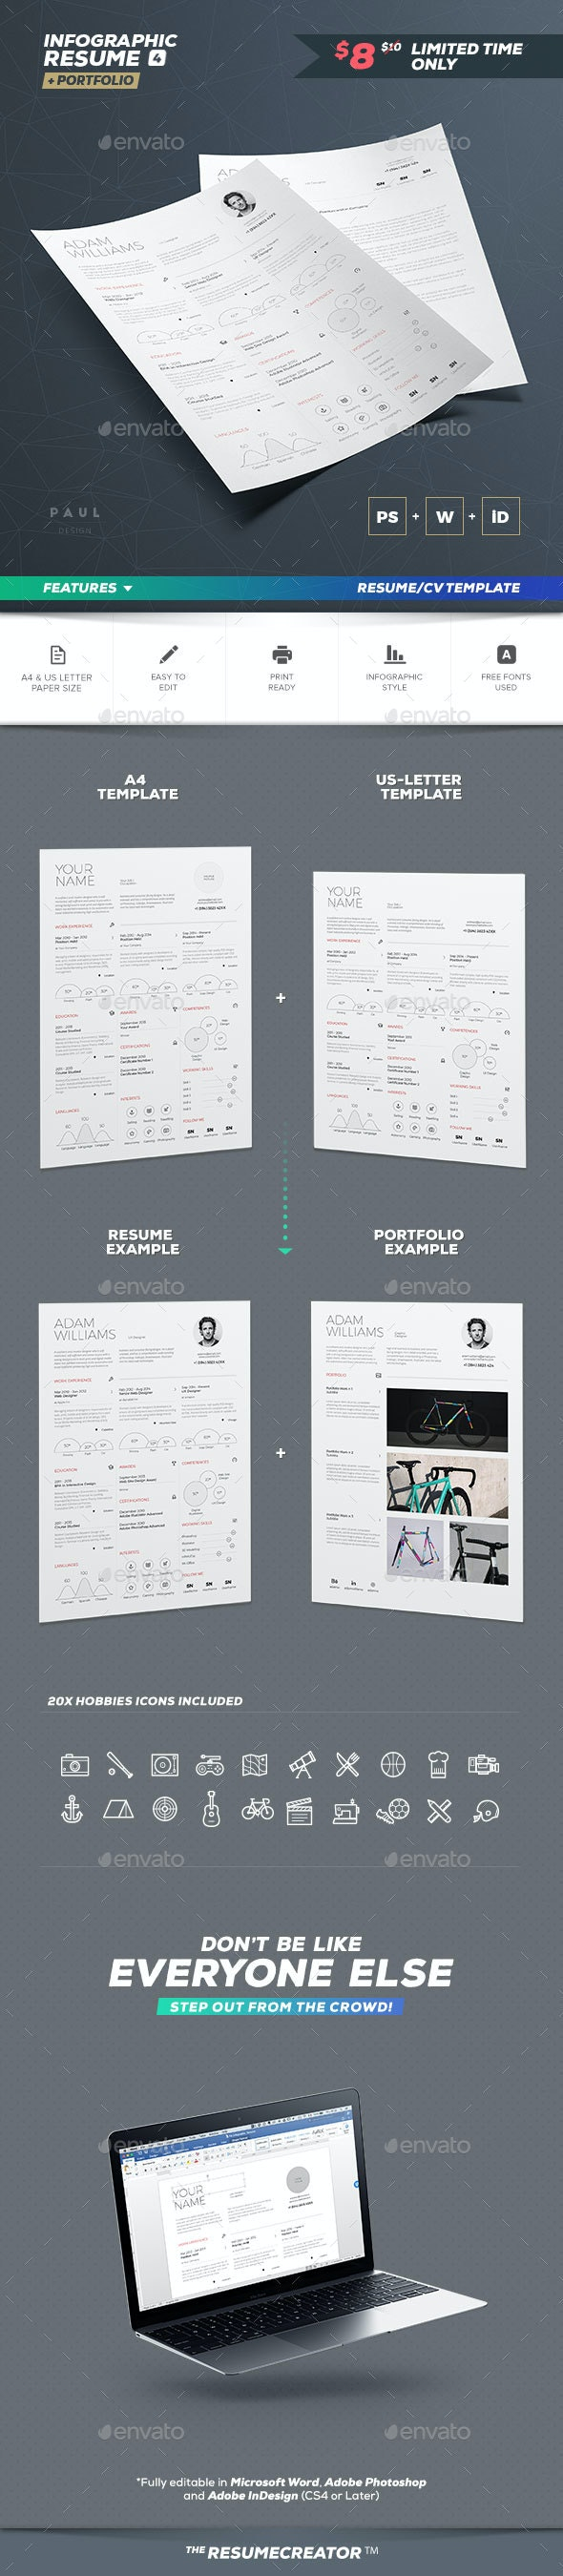 Infographic Resume Vol. 4 - Resumes Stationery